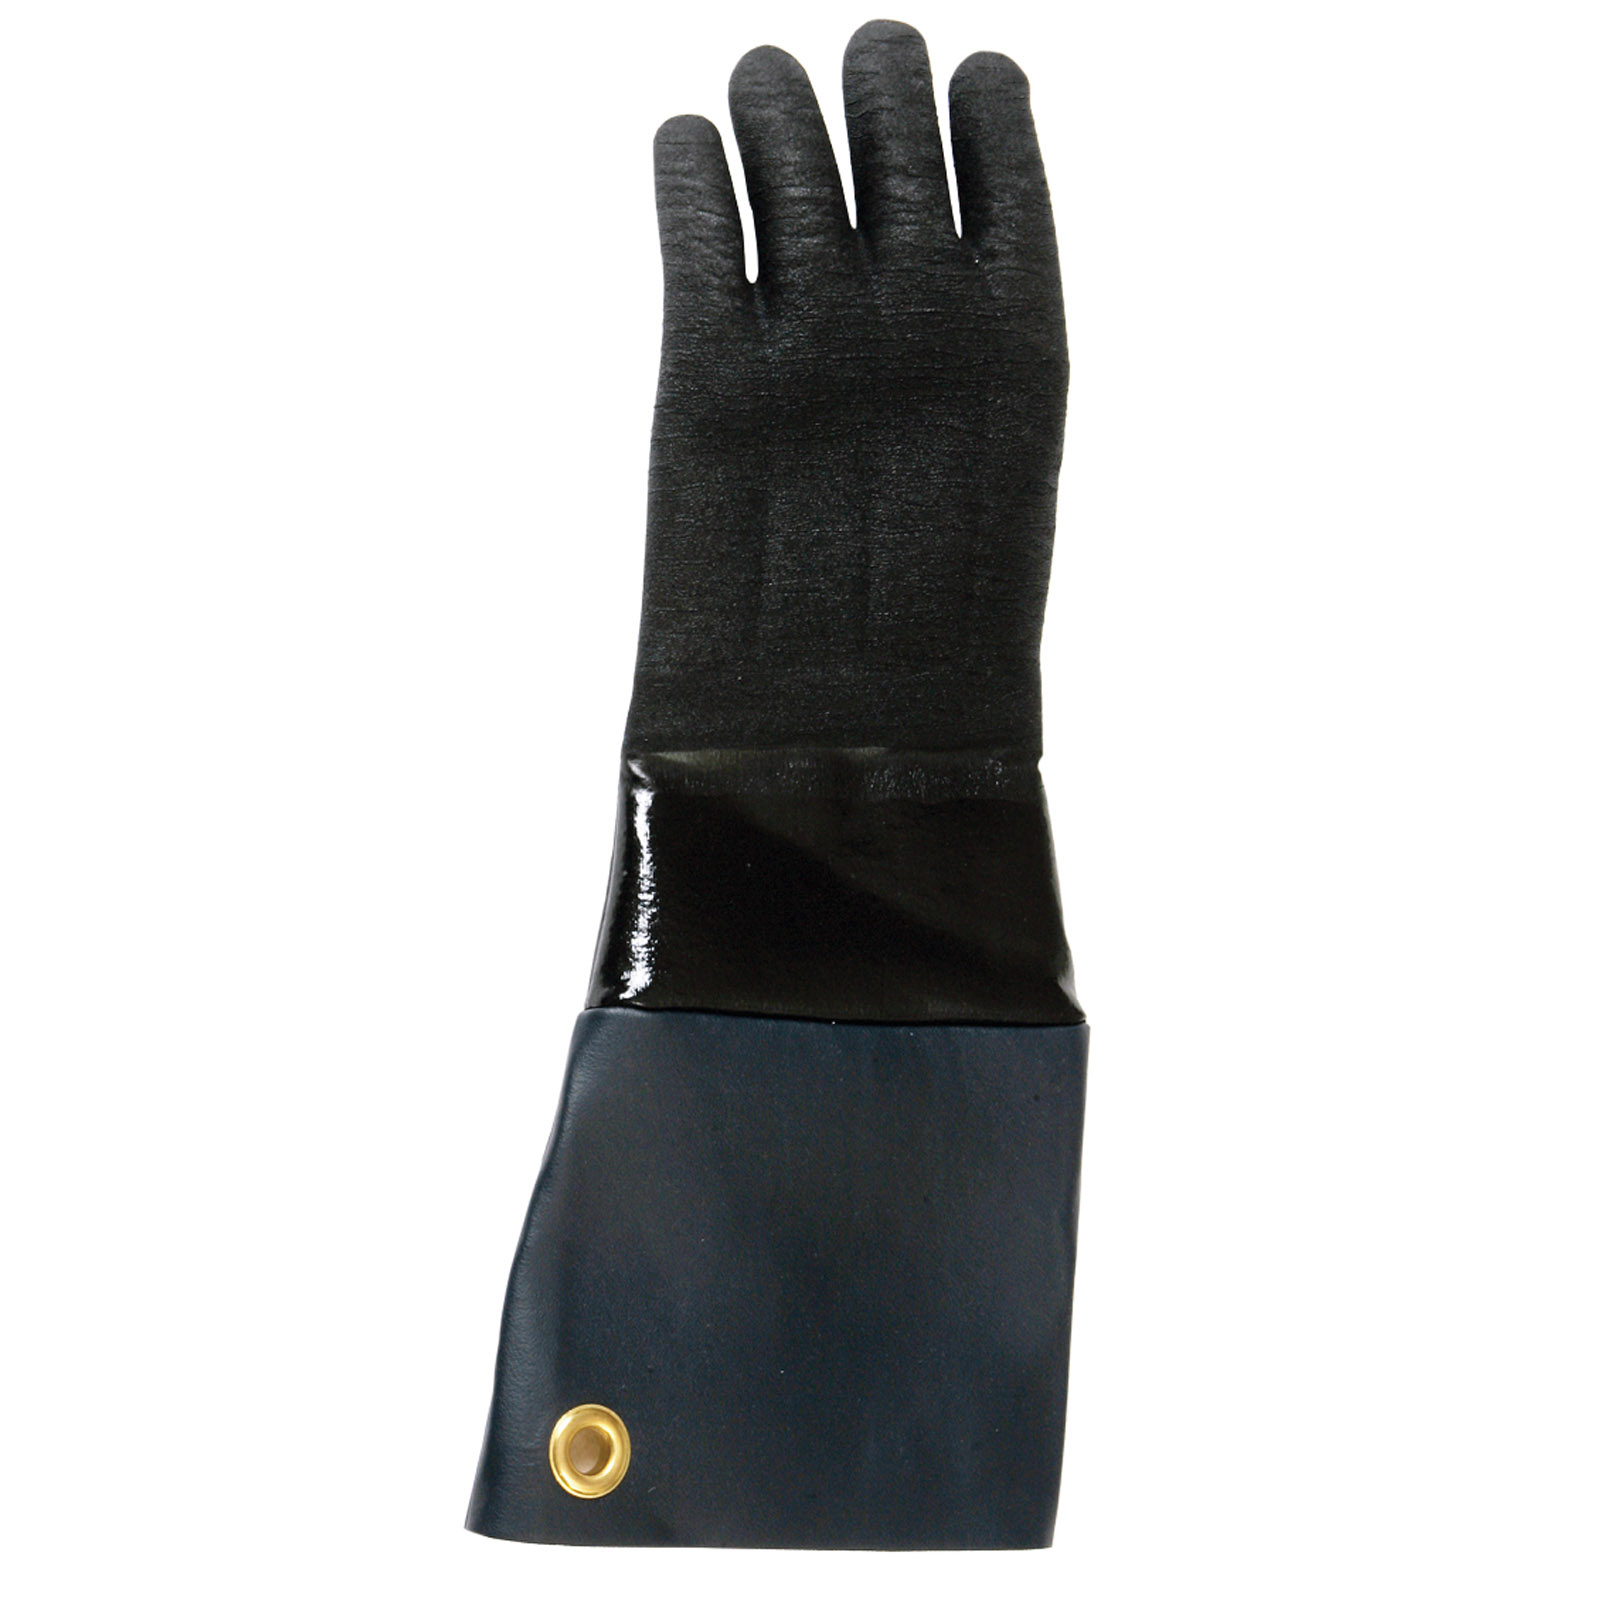 San Jamar T1217 gloves, heat resistant